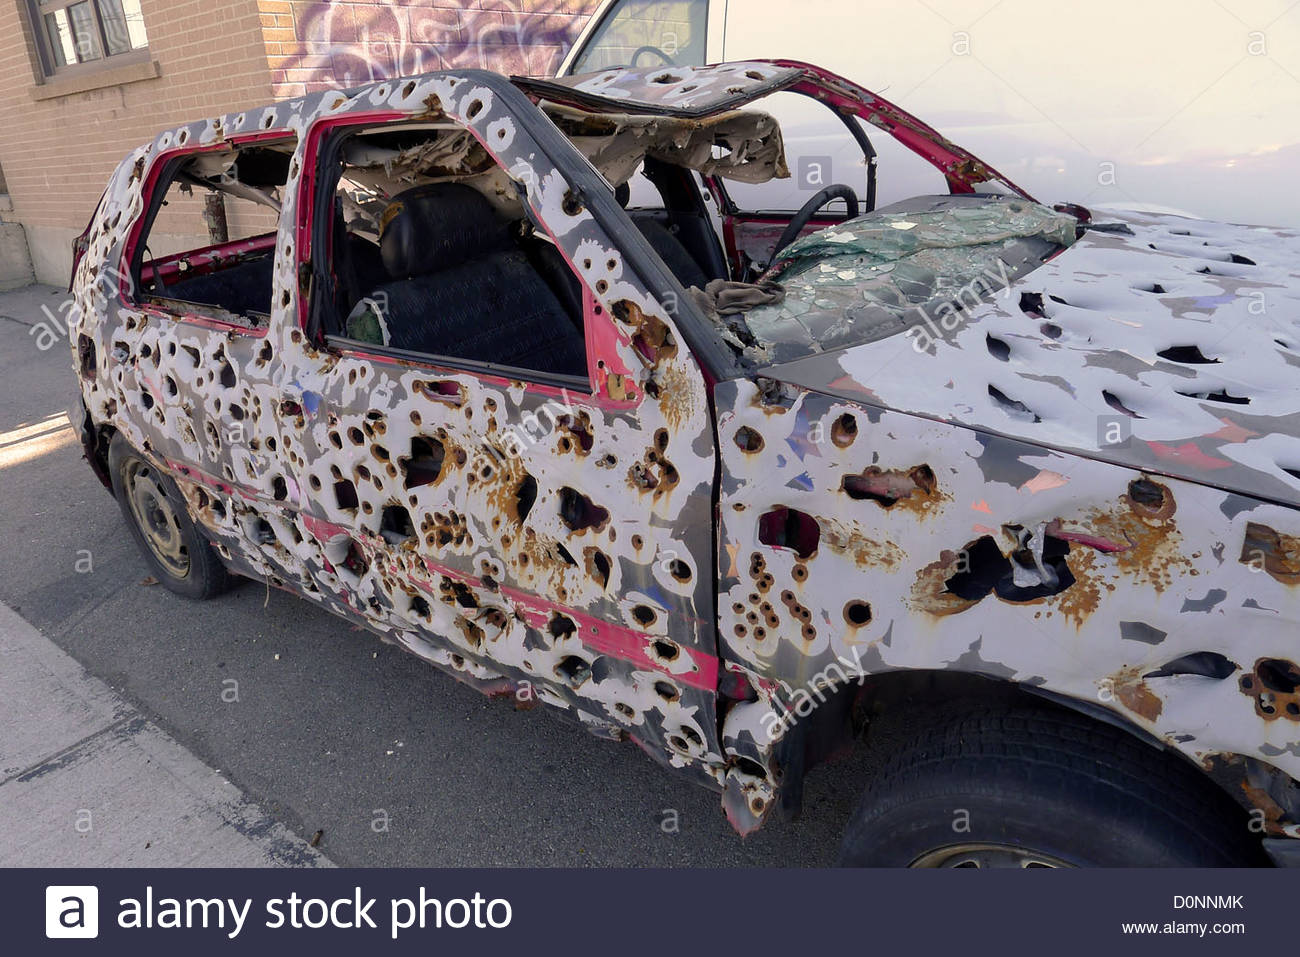 a-bullet-riddled-car-once-used-in-a-toronto-art-installation-D0NNMK.jpg